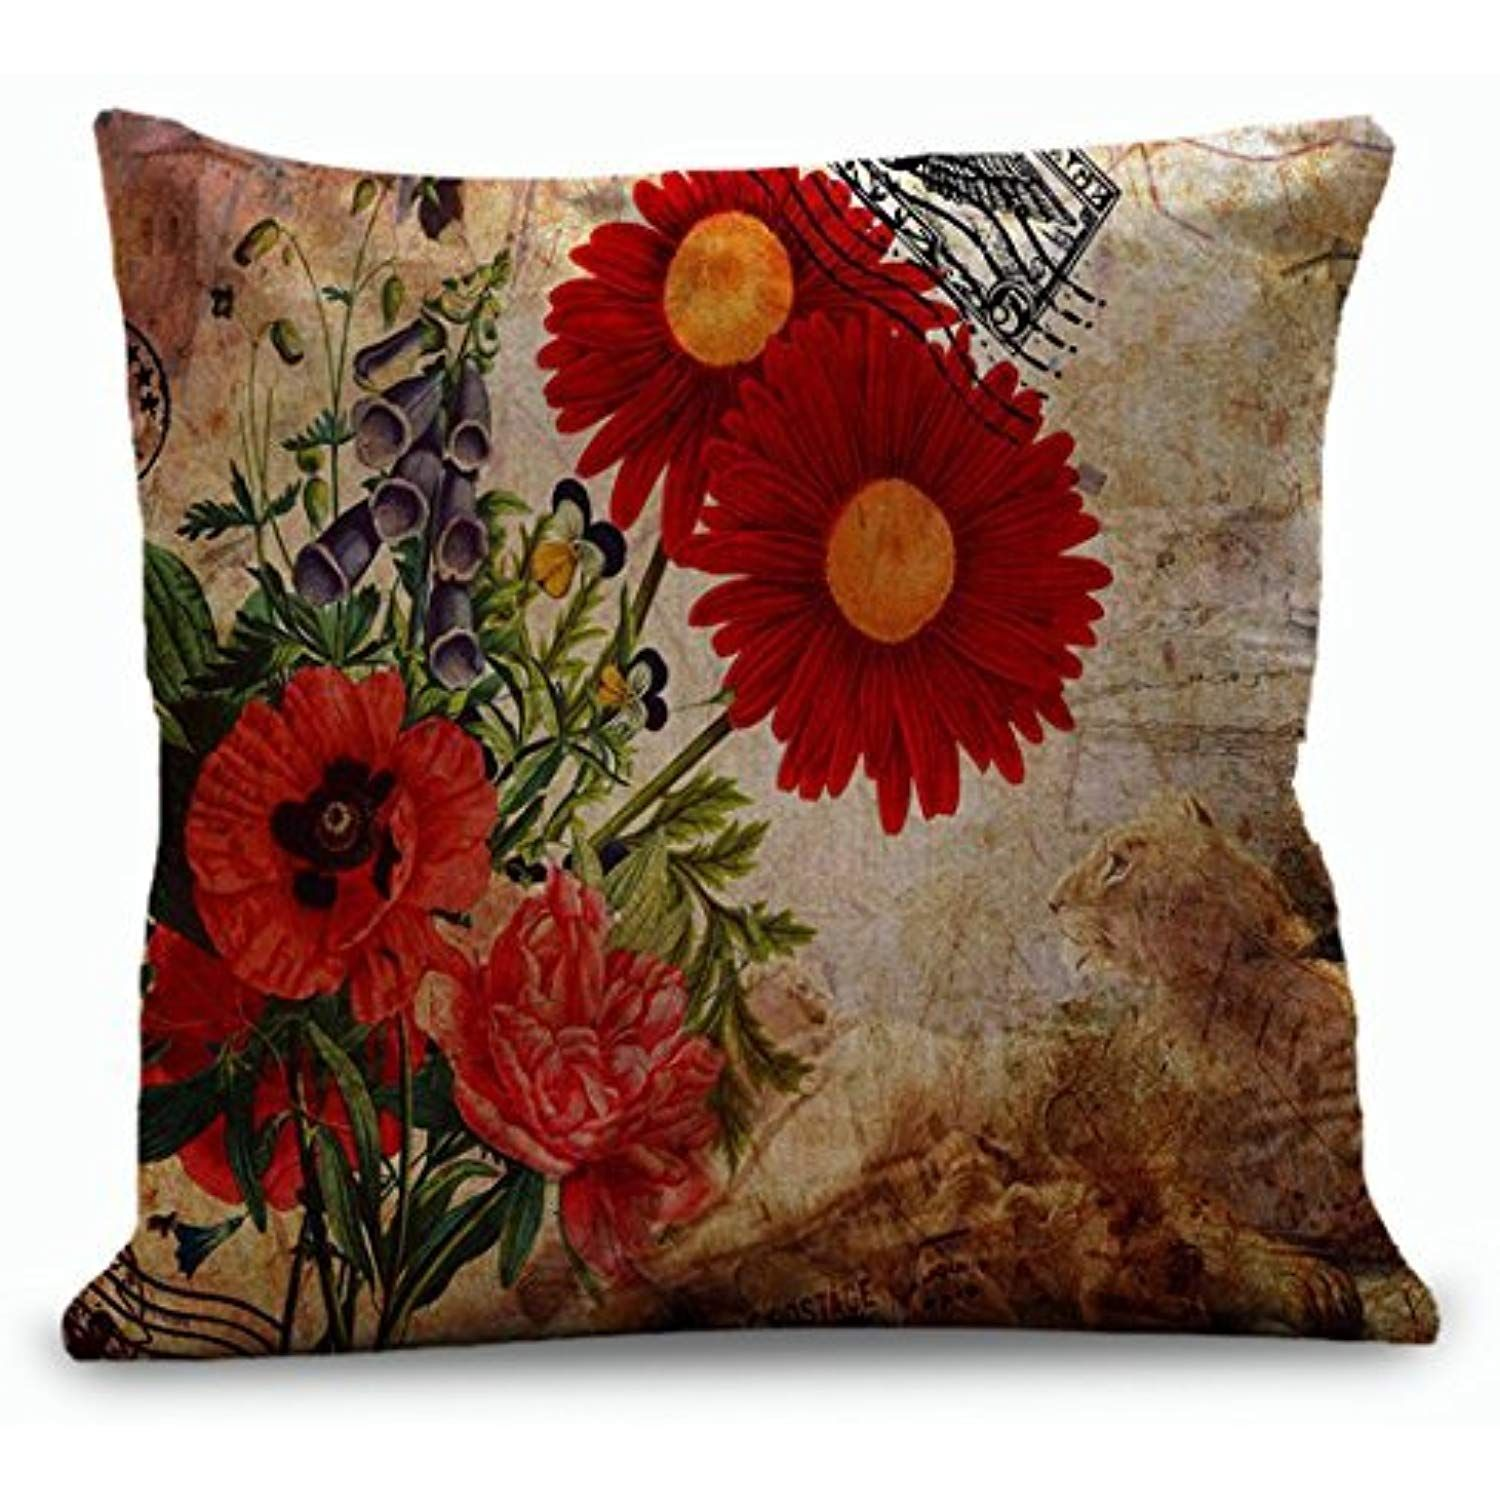 16x16 inches red gerbera flower throw pillow covers accent